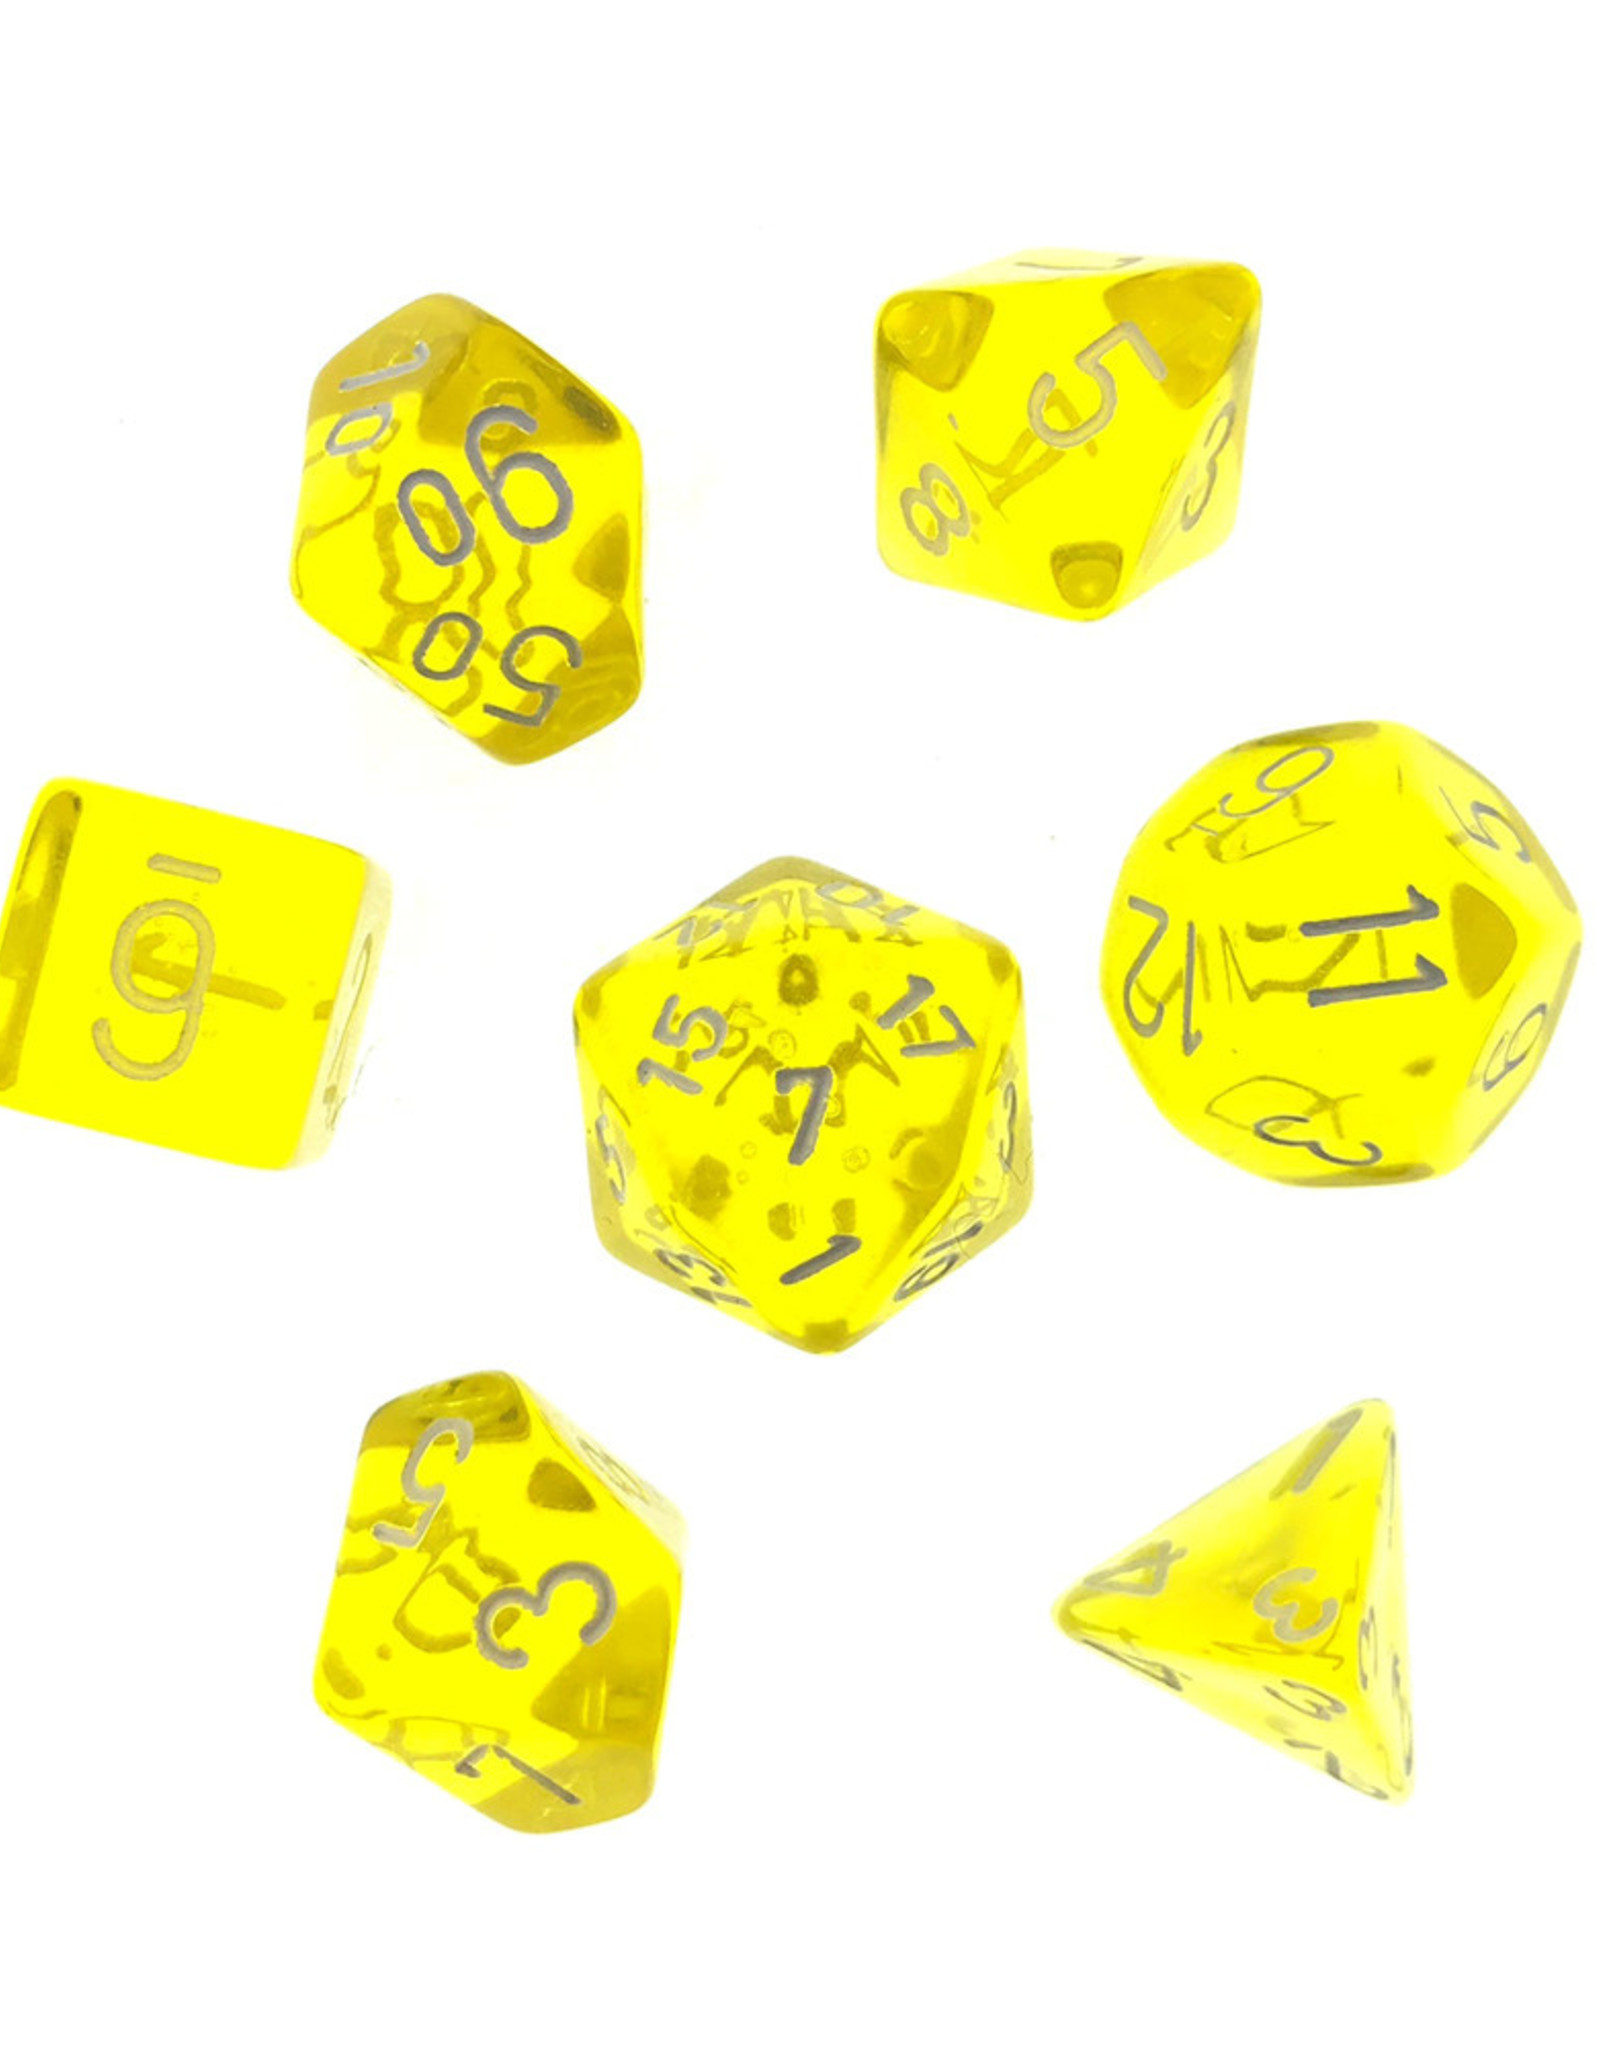 Chessex Chessex 7-Die set Translucent - Yellow/White